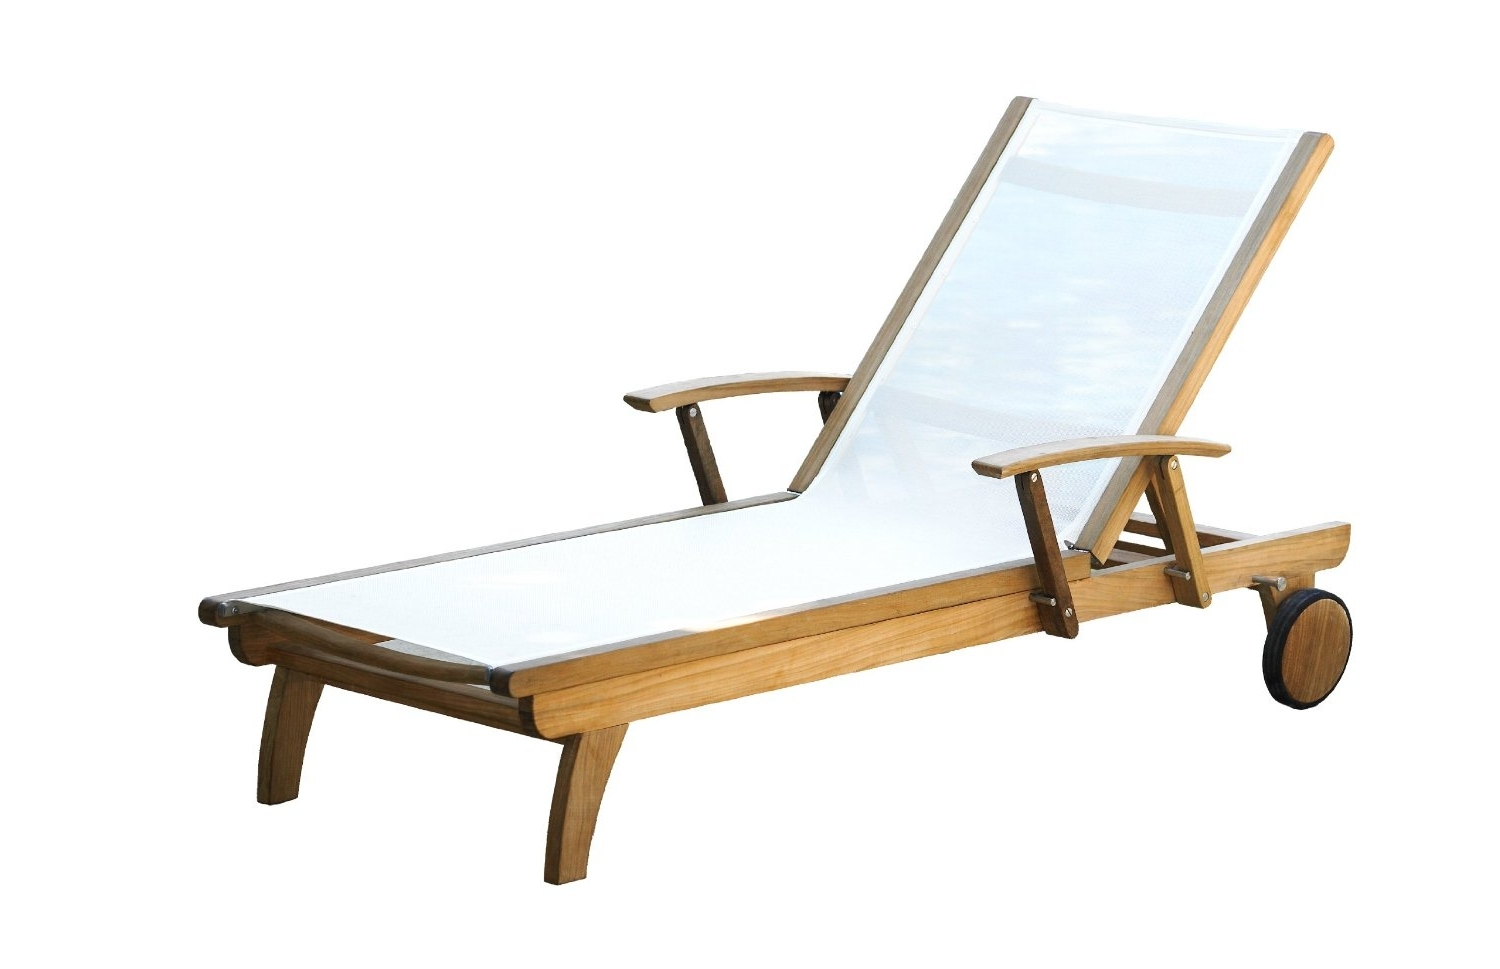 Newest Teak Chaise Lounge Chair – Teak Patio Furniture World In Teak Chaise Lounge Chairs (View 7 of 15)